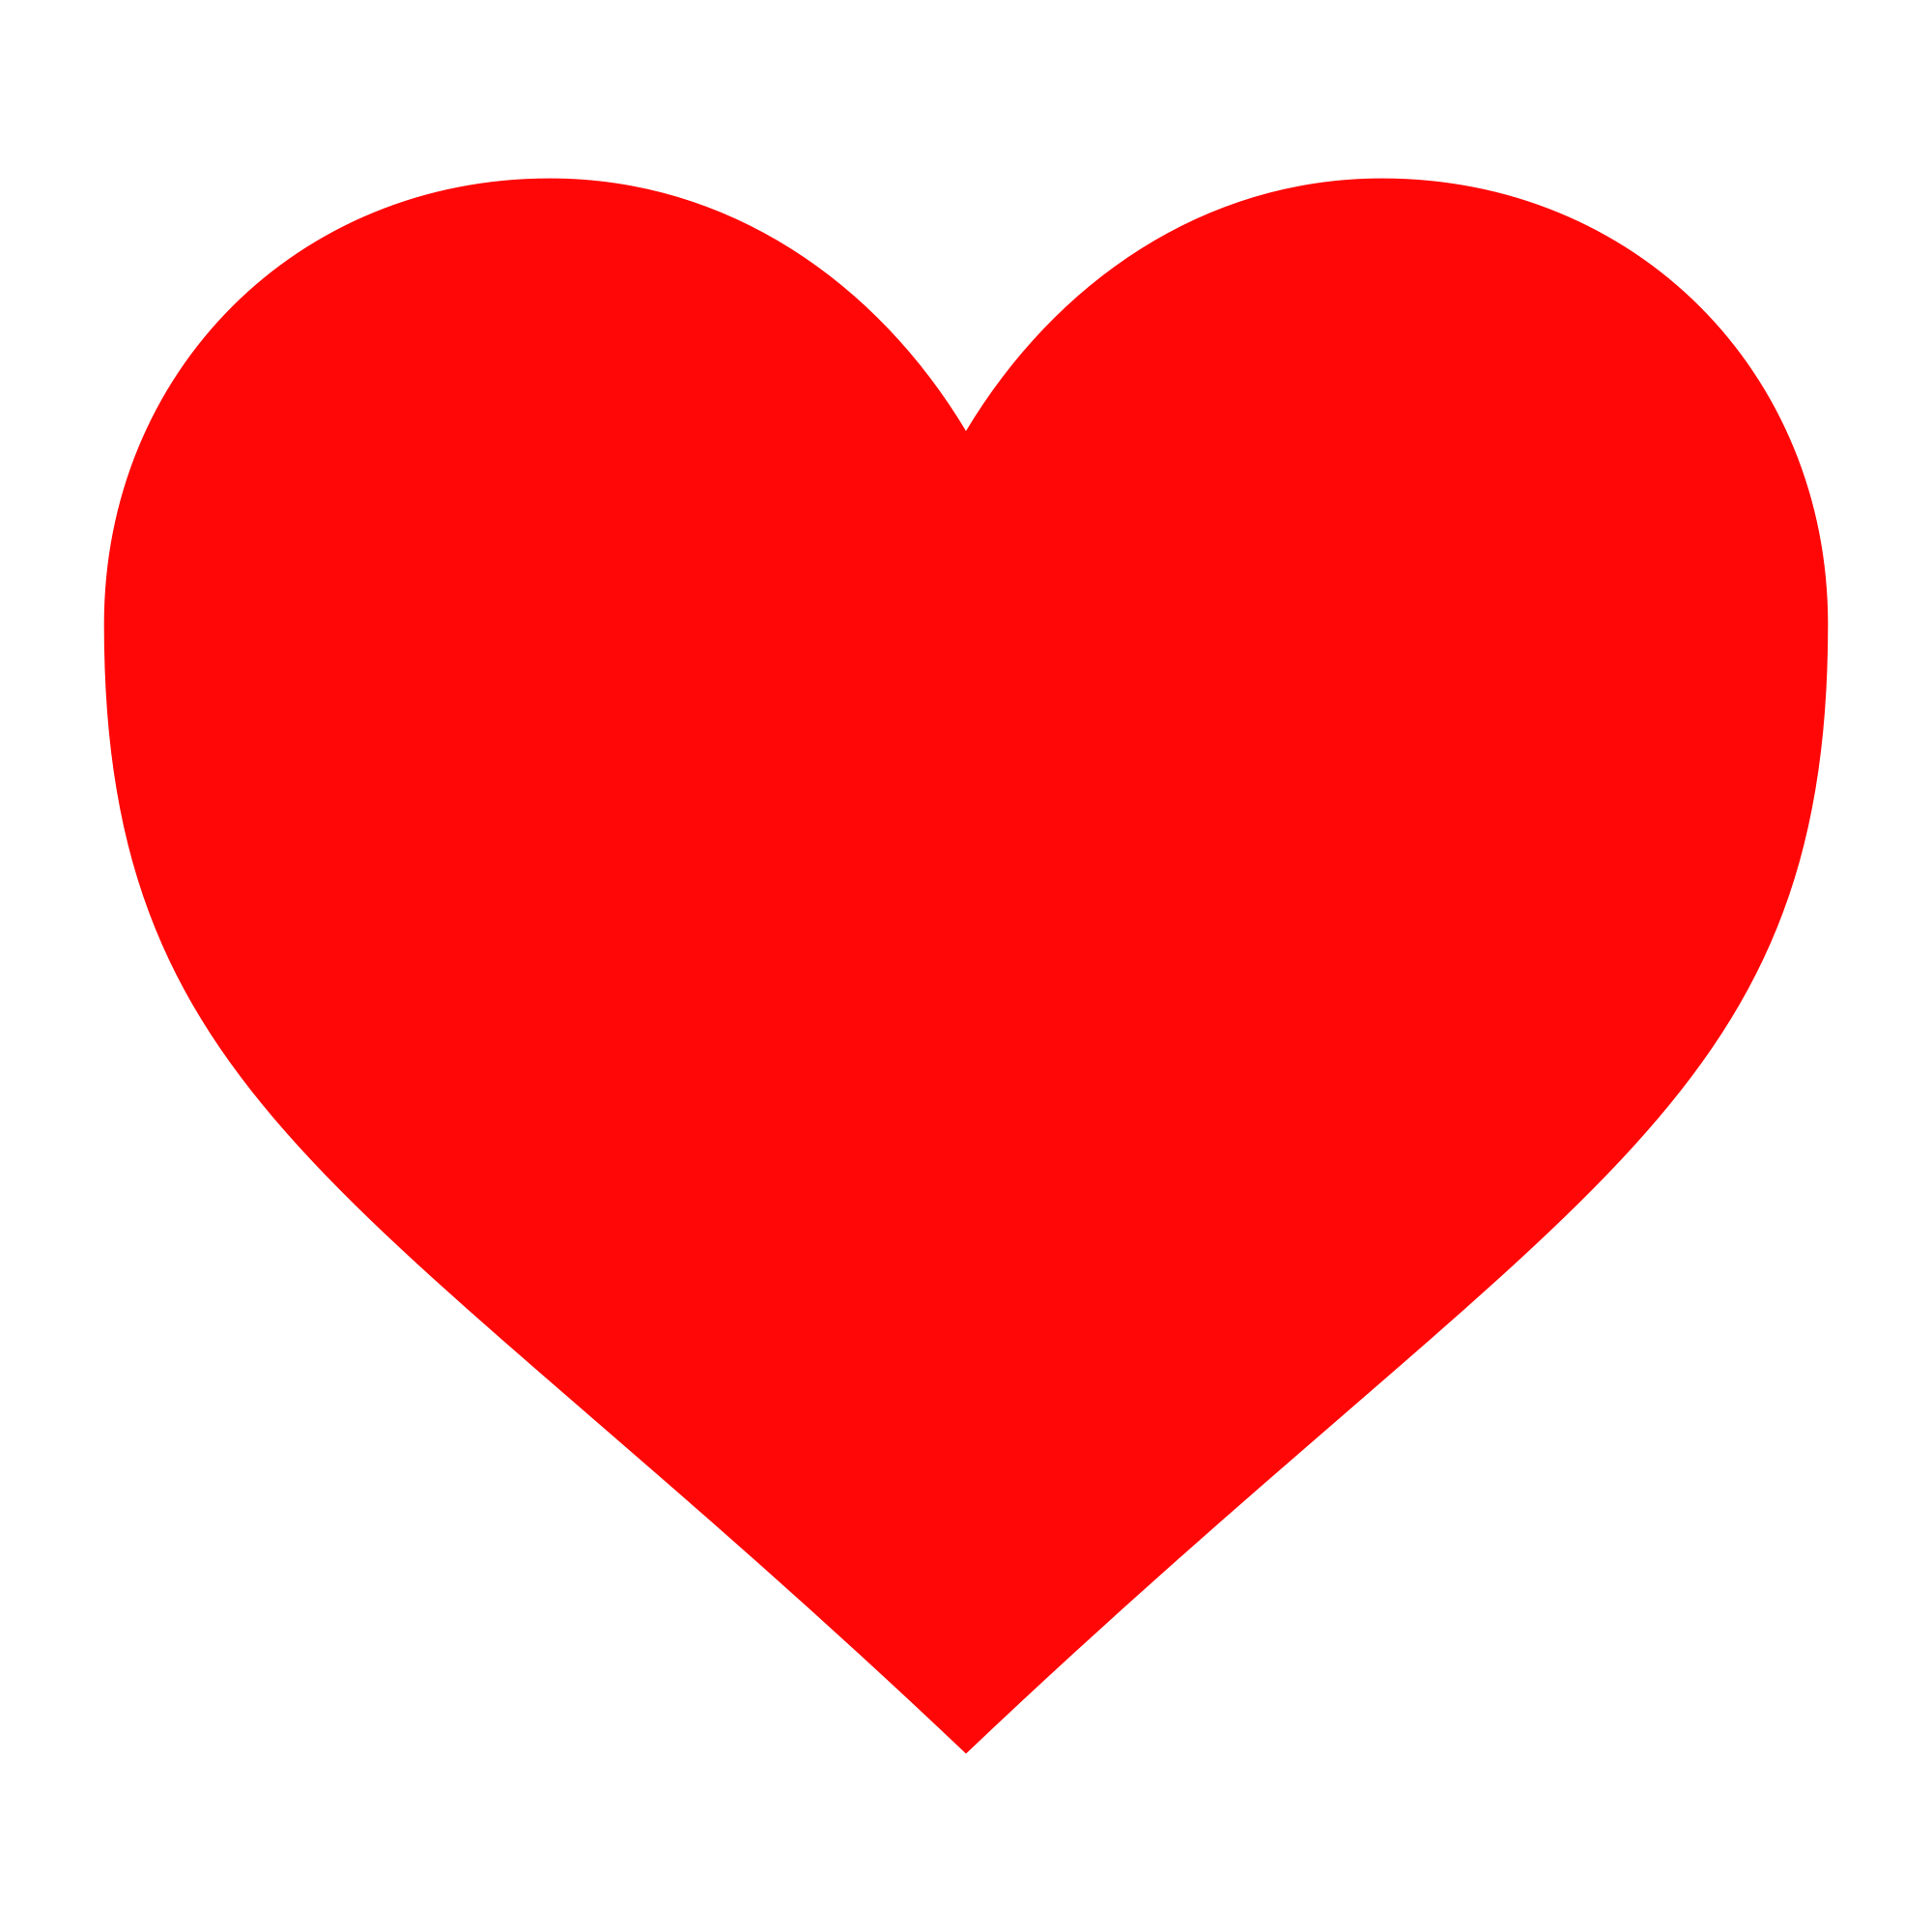 High Quality Wallpapers: Heart Images For Desktop, Free Download